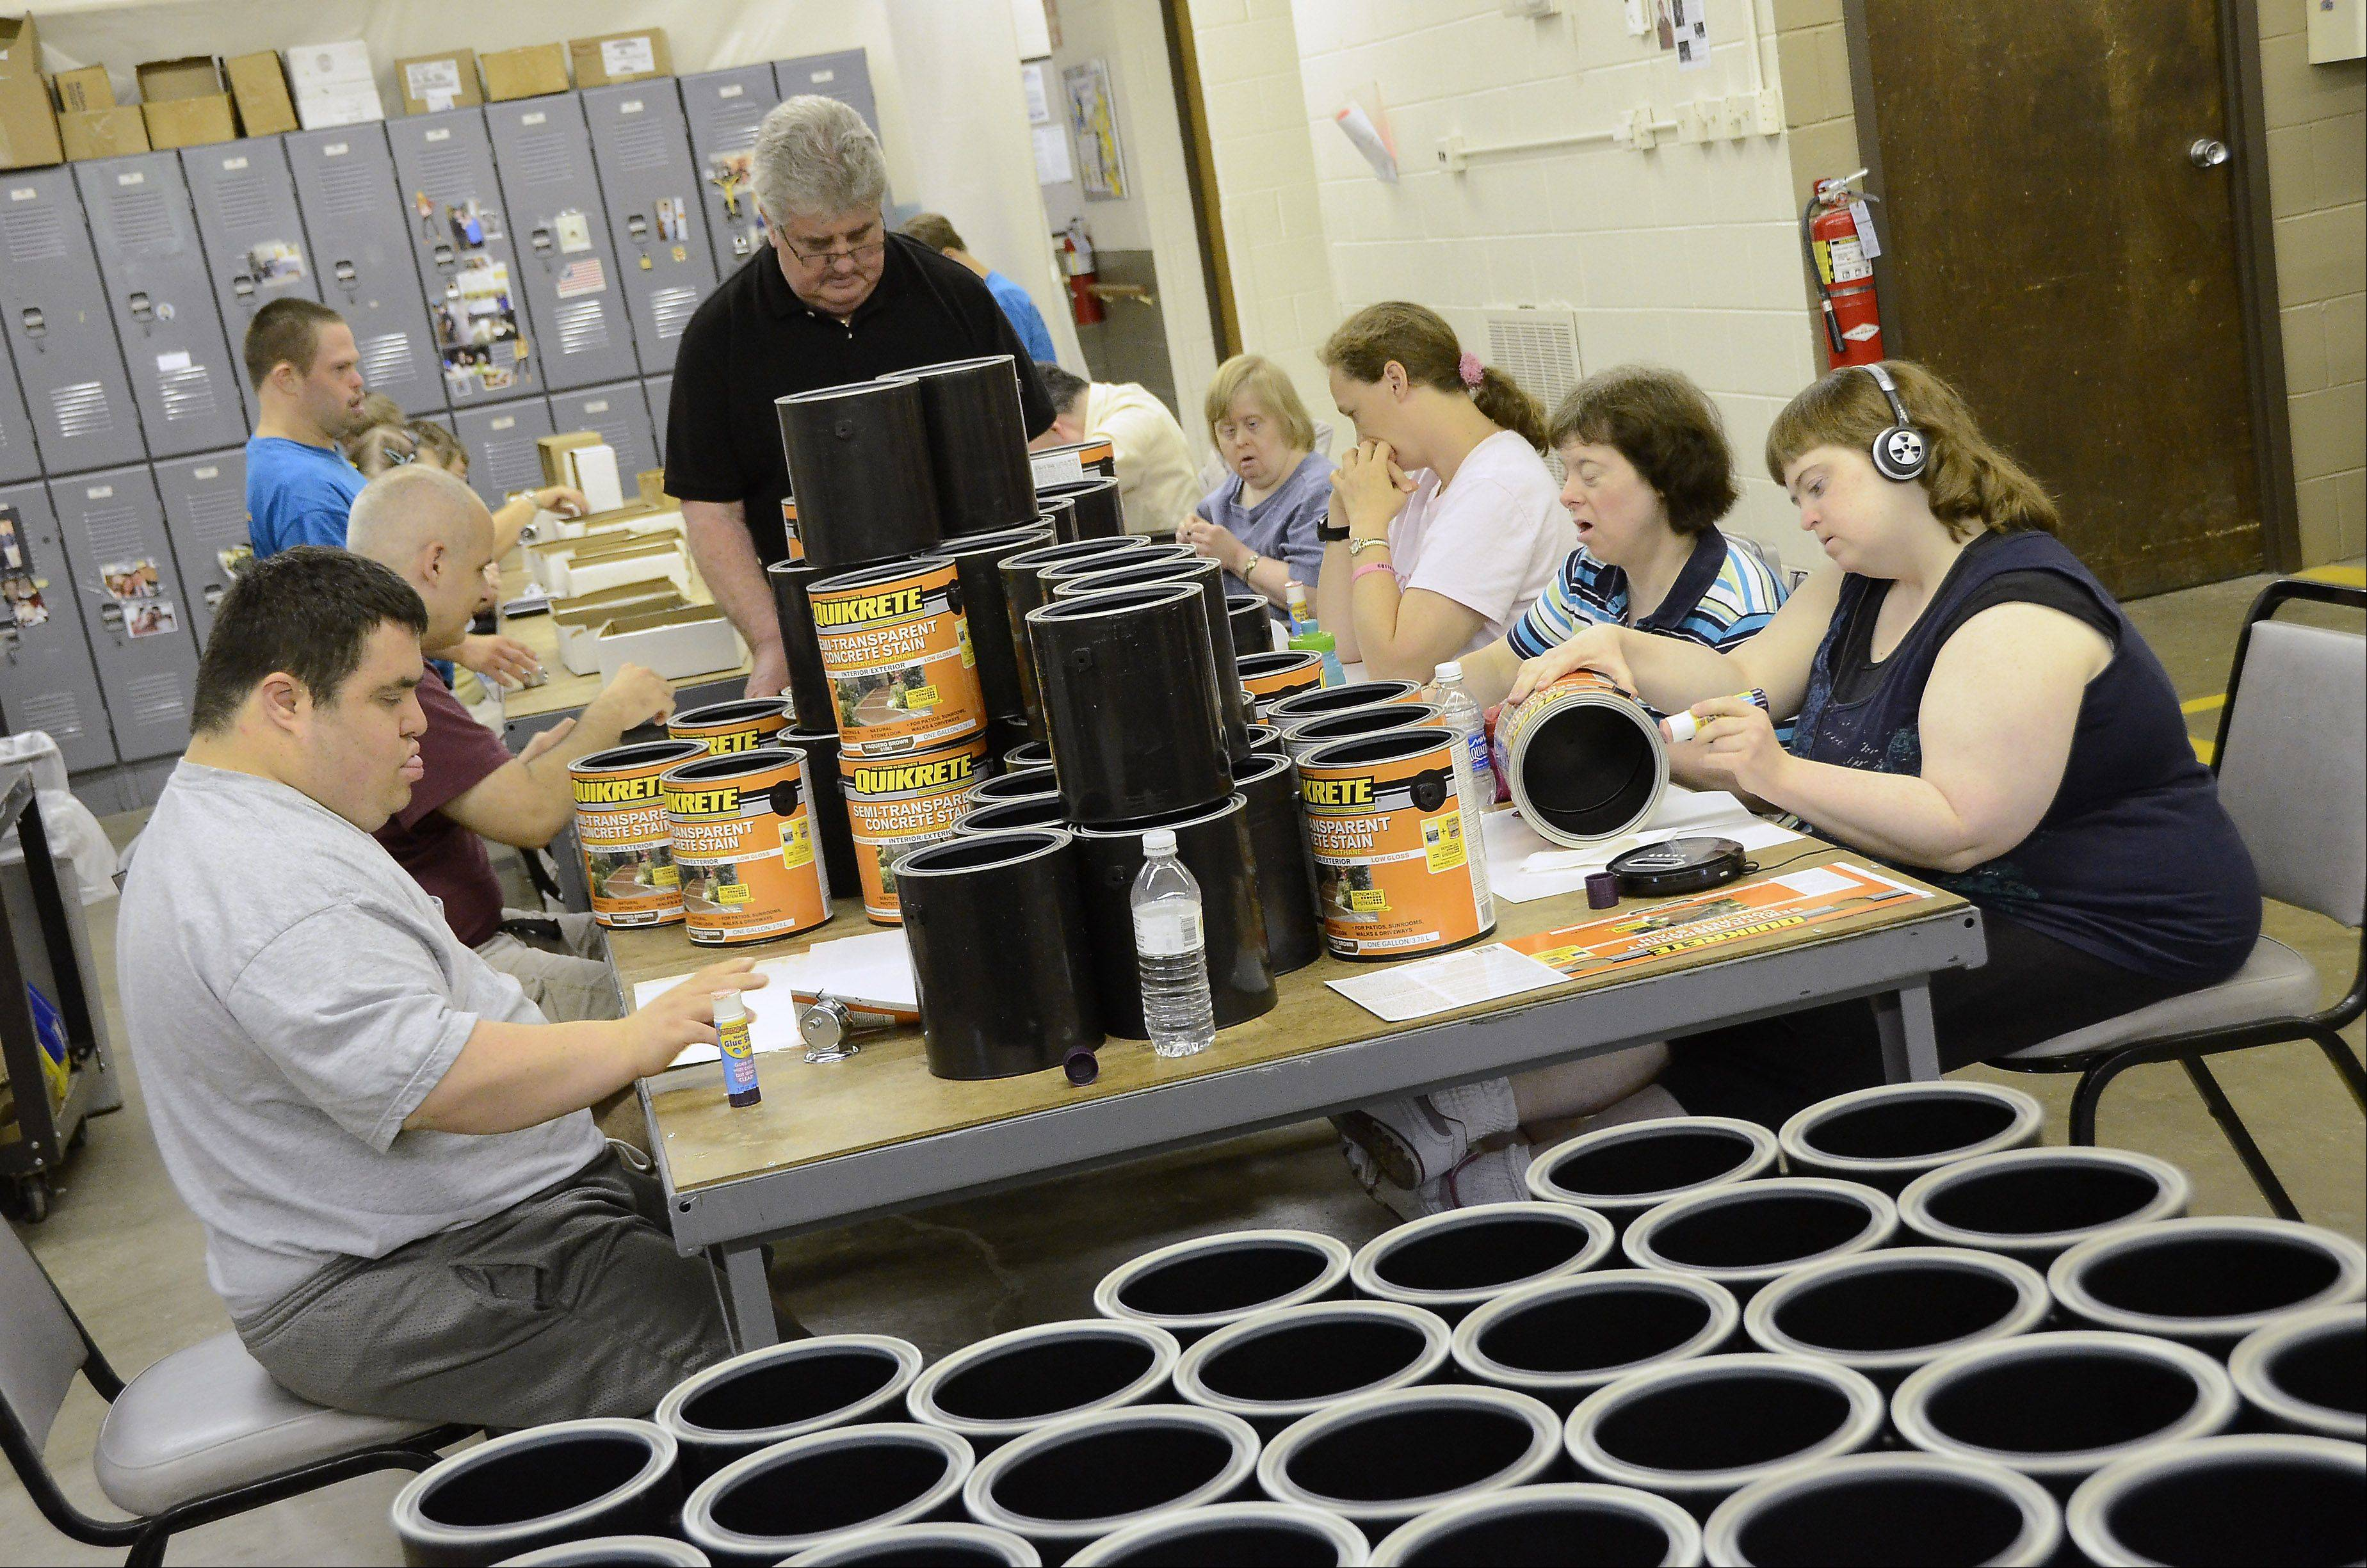 Clients at Countryside Association for People with Disabilities affix labels to paint cans for Sunnyside Corp. The organization next week will open its new 9,000-square-foot addition.